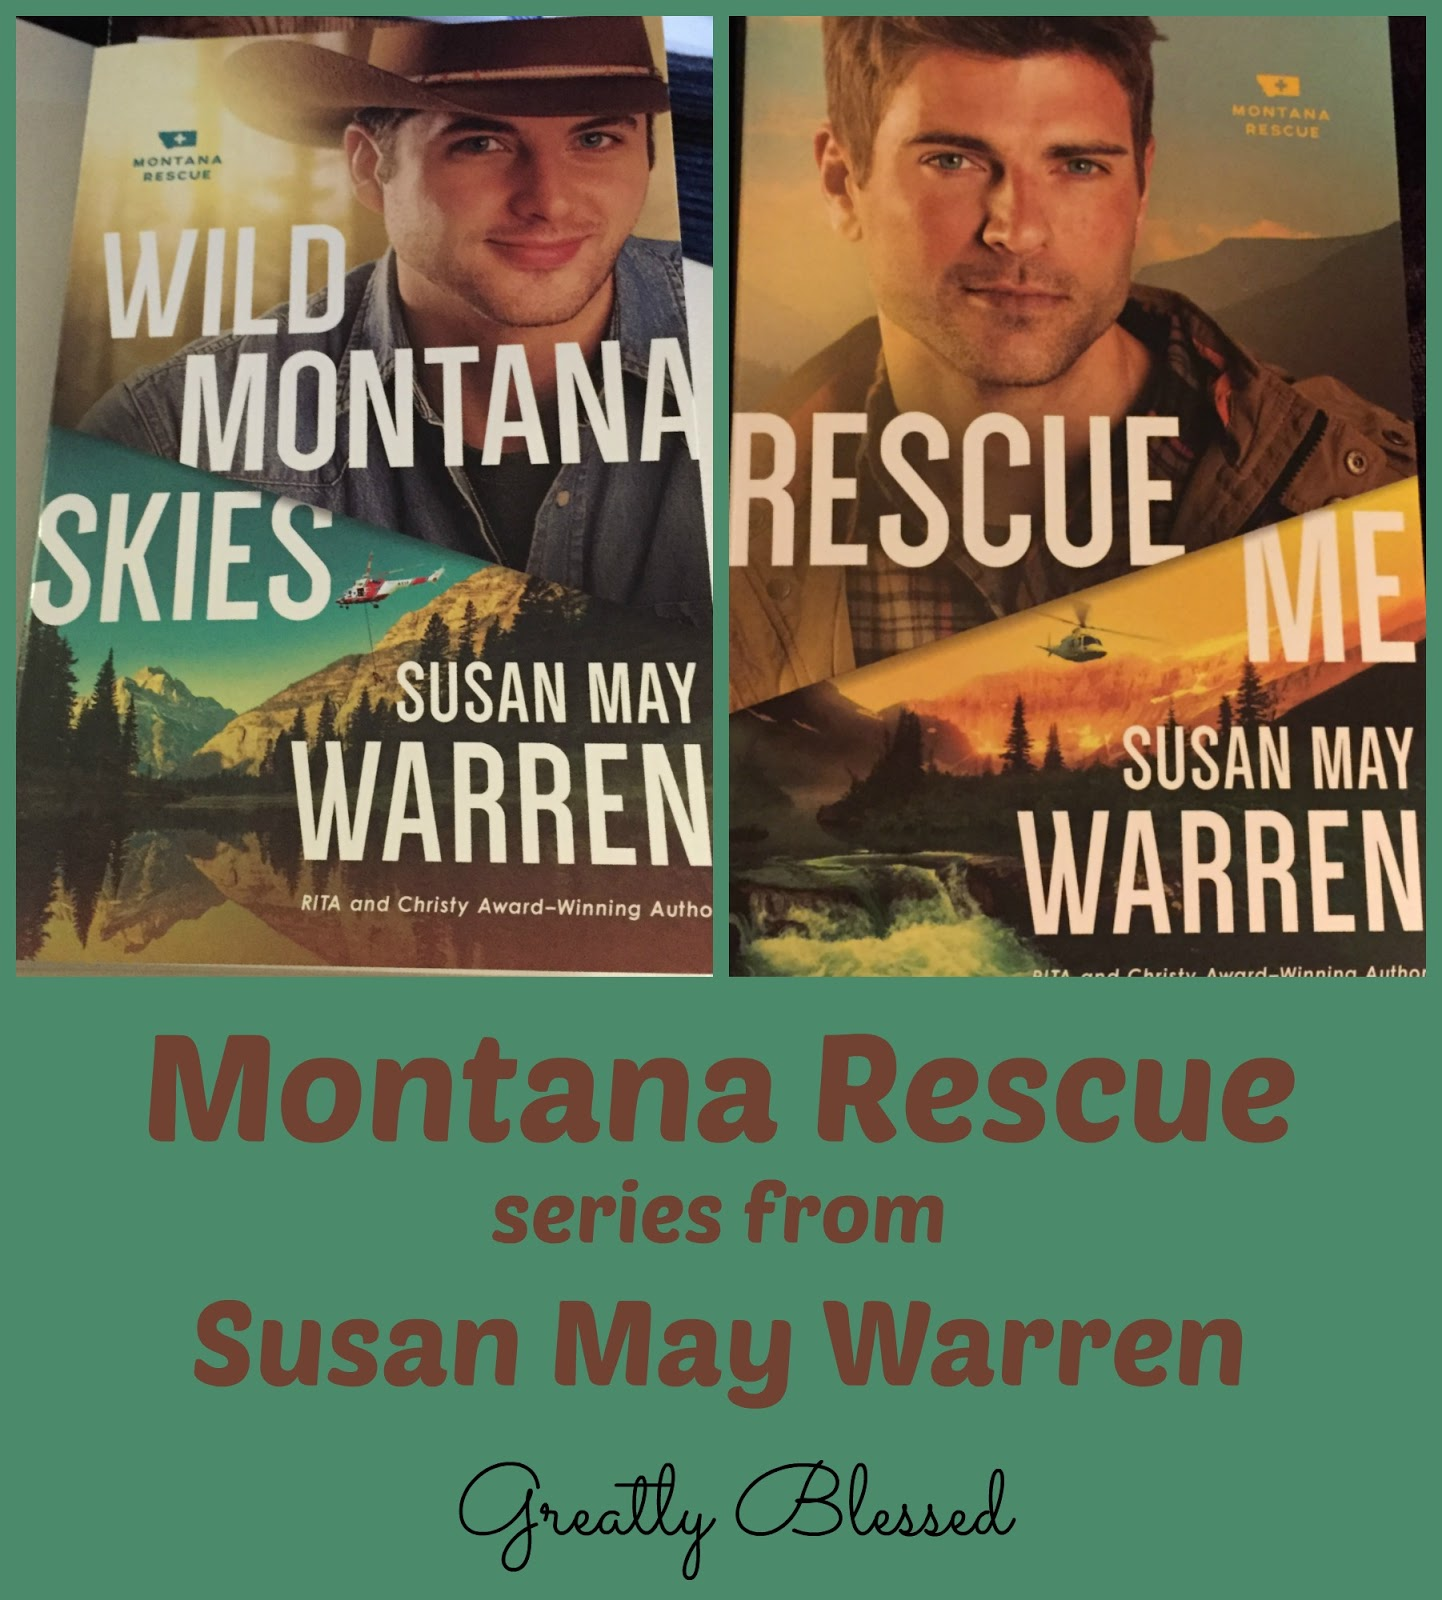 I whiled away the hours (well, some of them, anyway) on the long flight to  Hong Kong in November with Wild Montana Skies, by Susan May Warren.